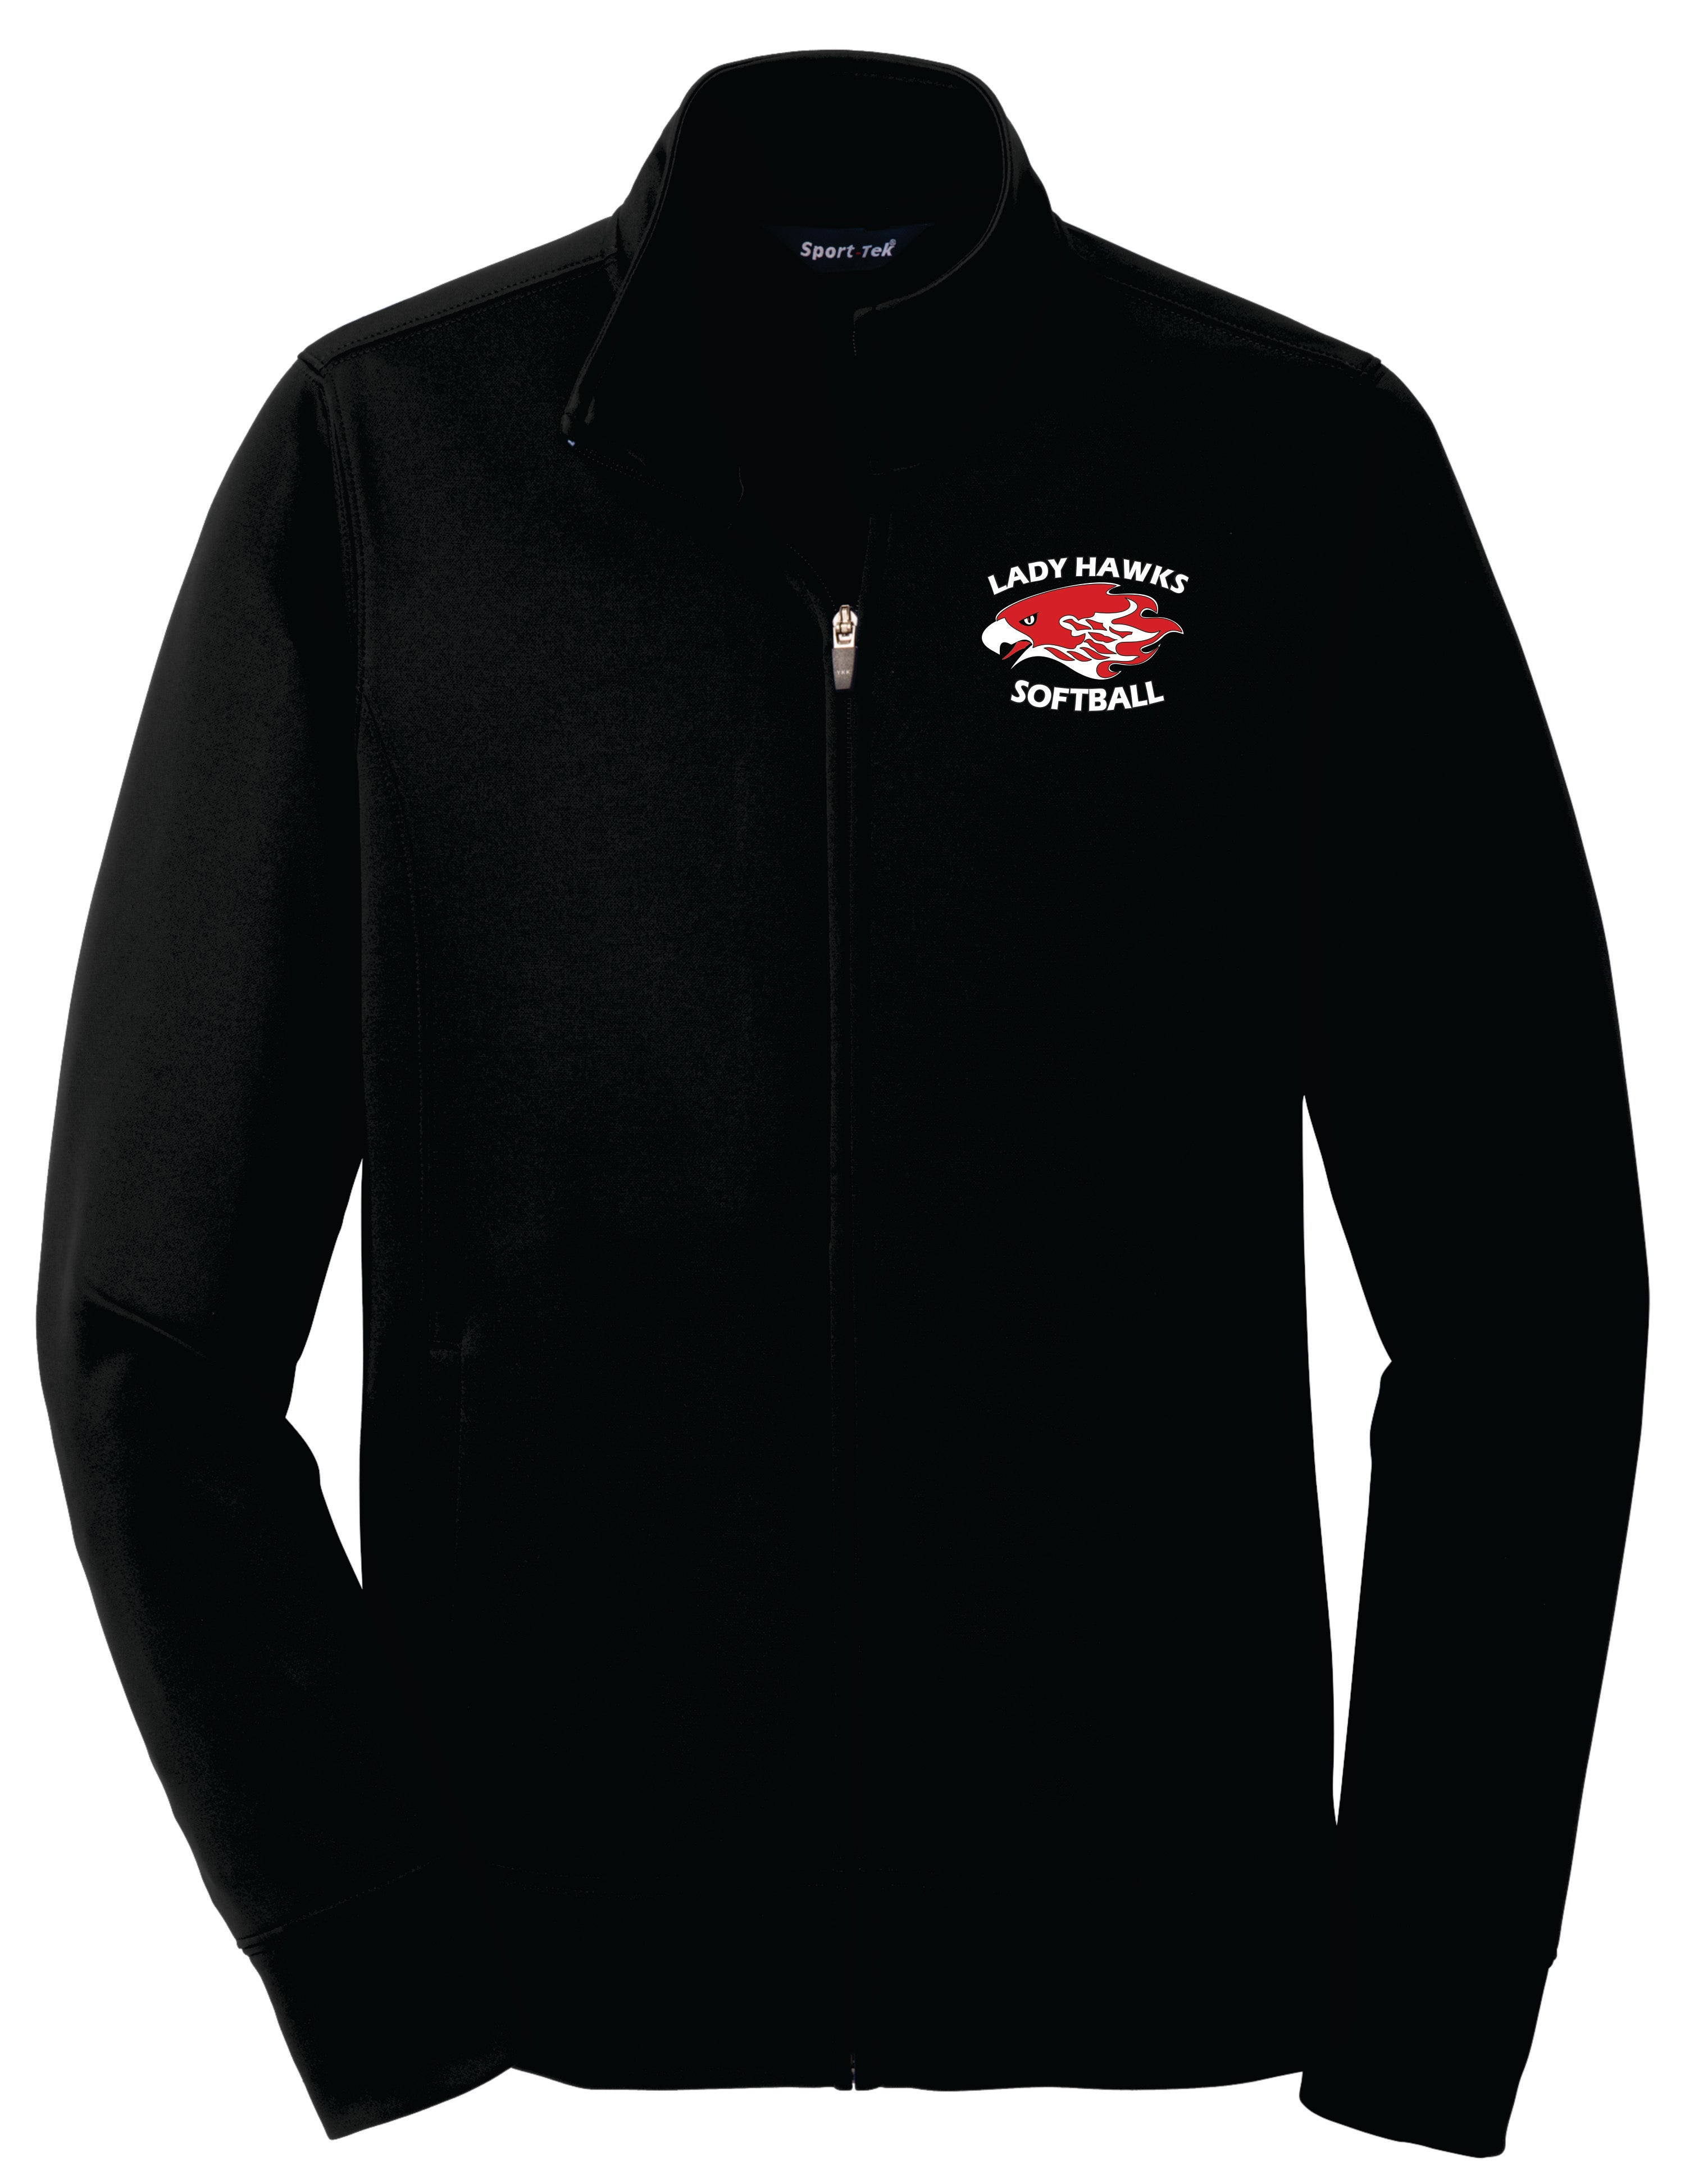 Rossview Hawks Softball Fleece Jacket